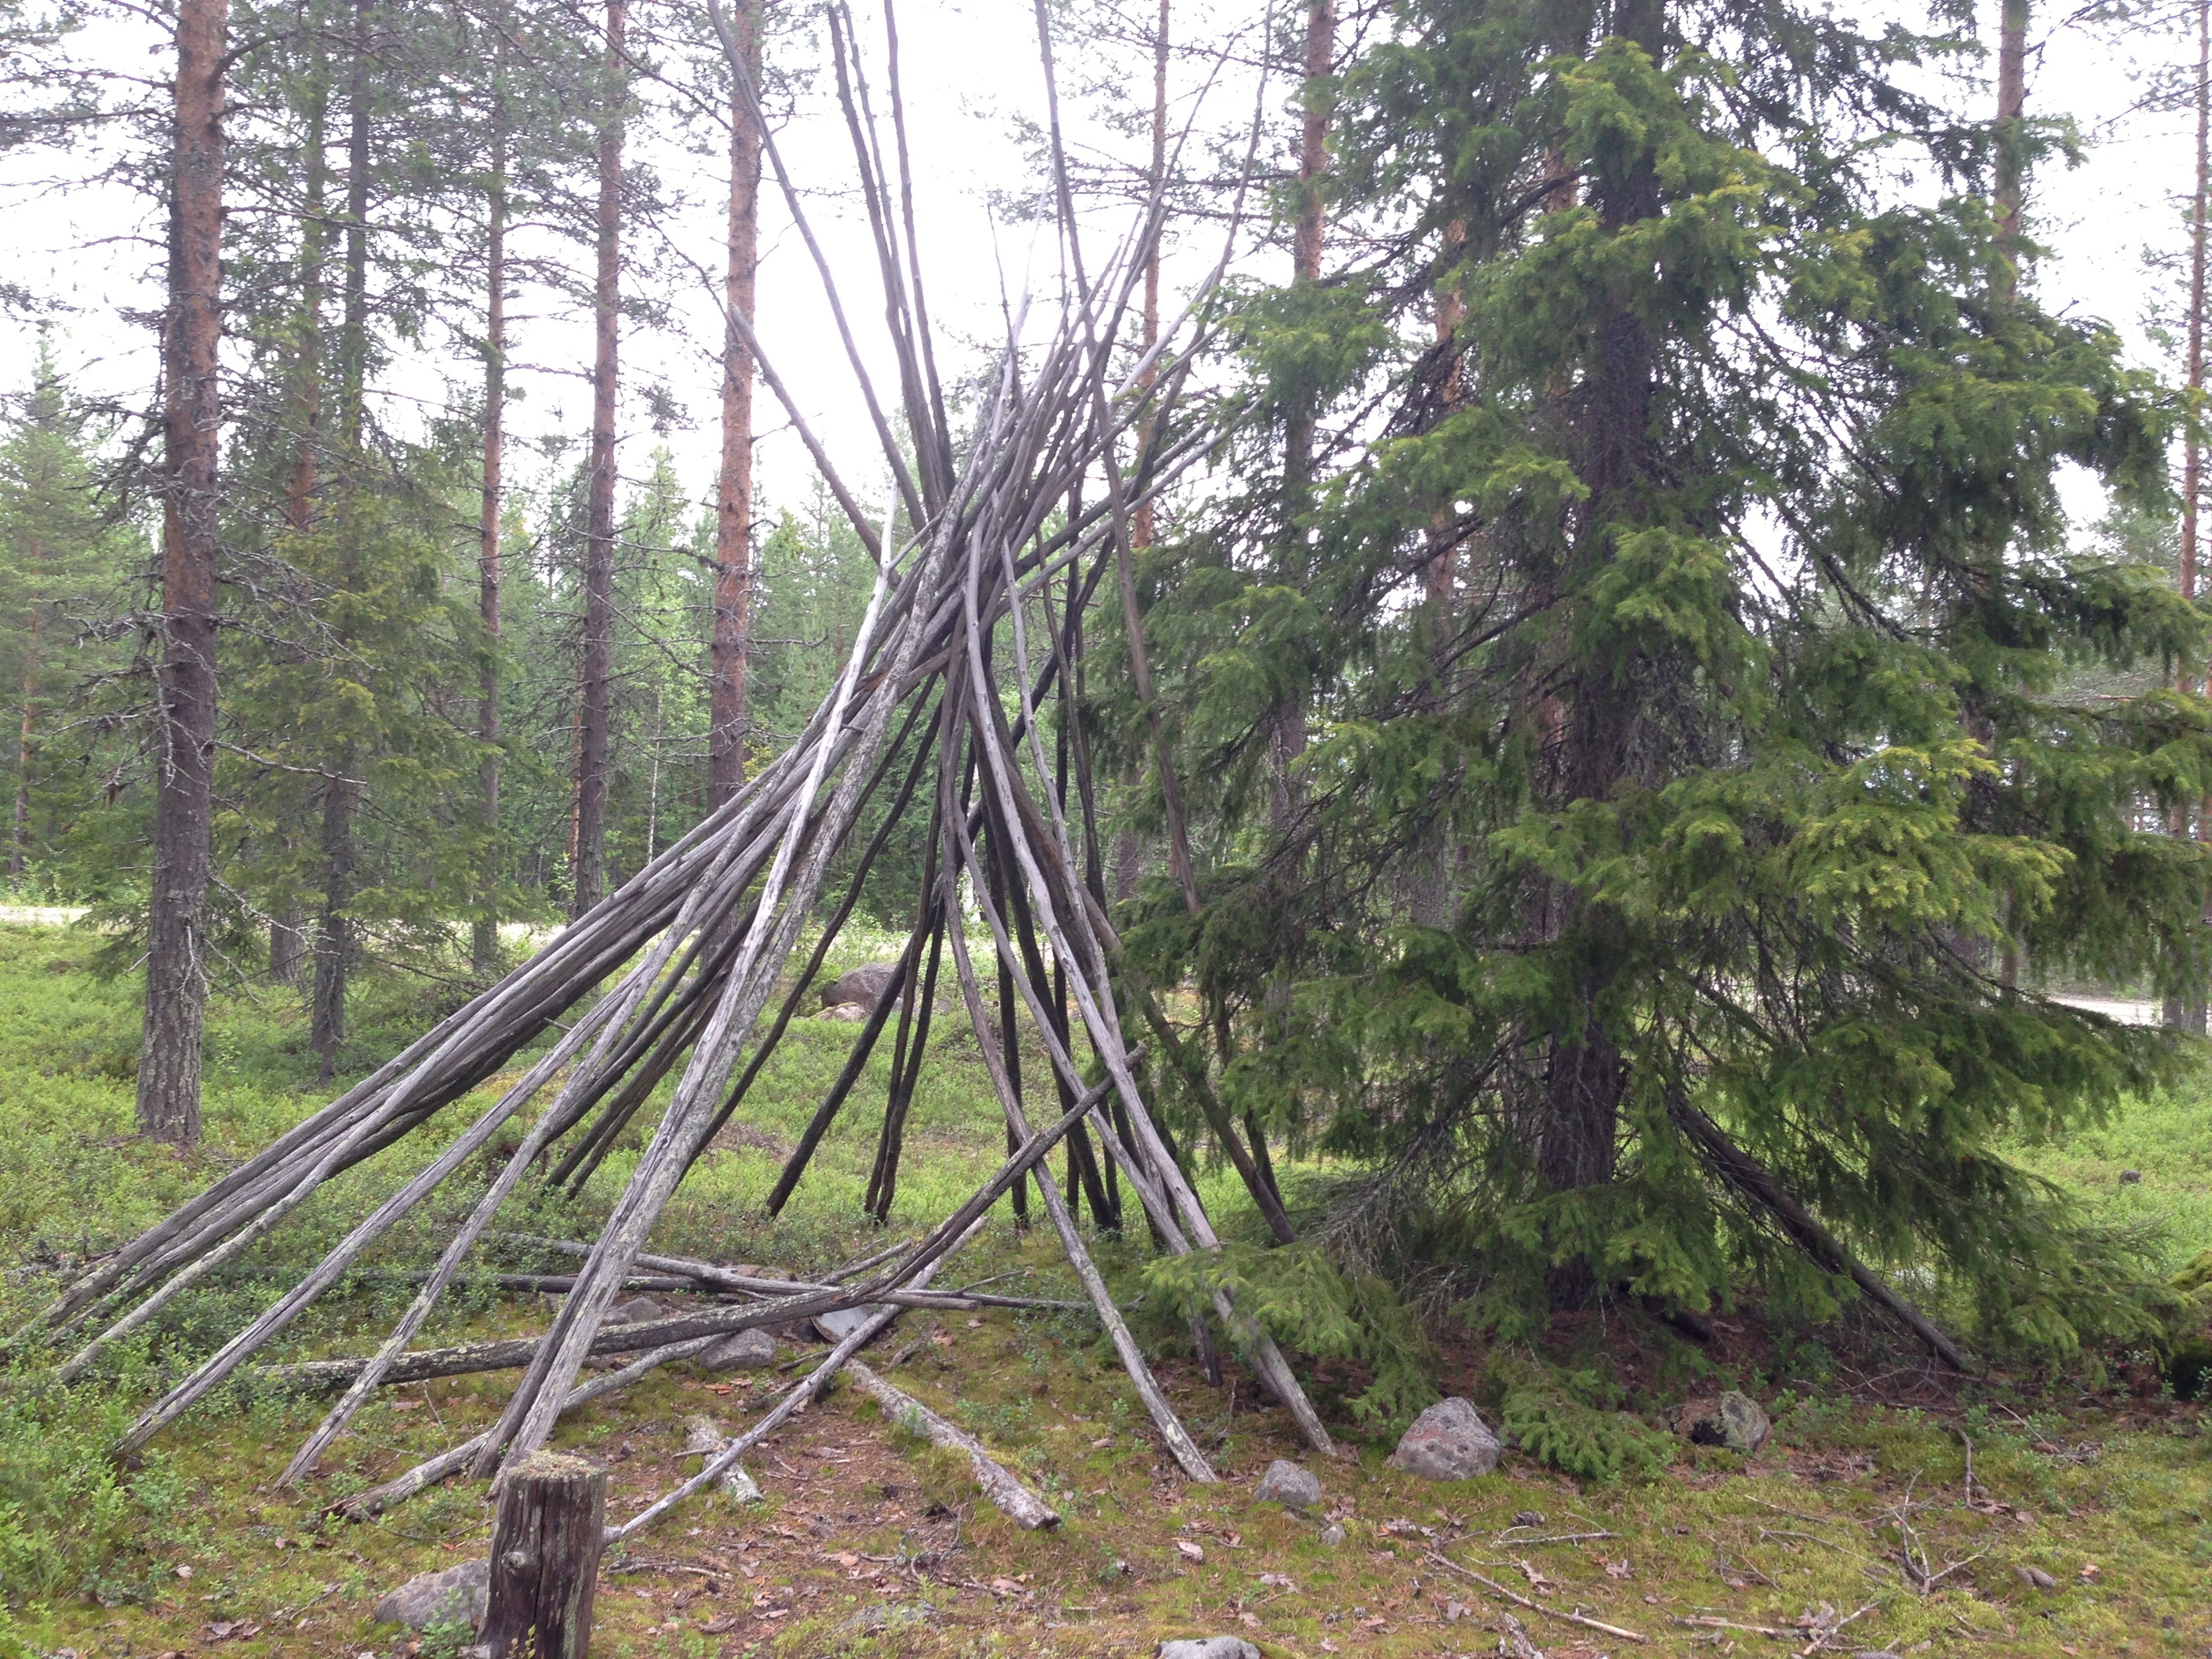 remains of a Sami Kåta (tipi), with the fire in the center